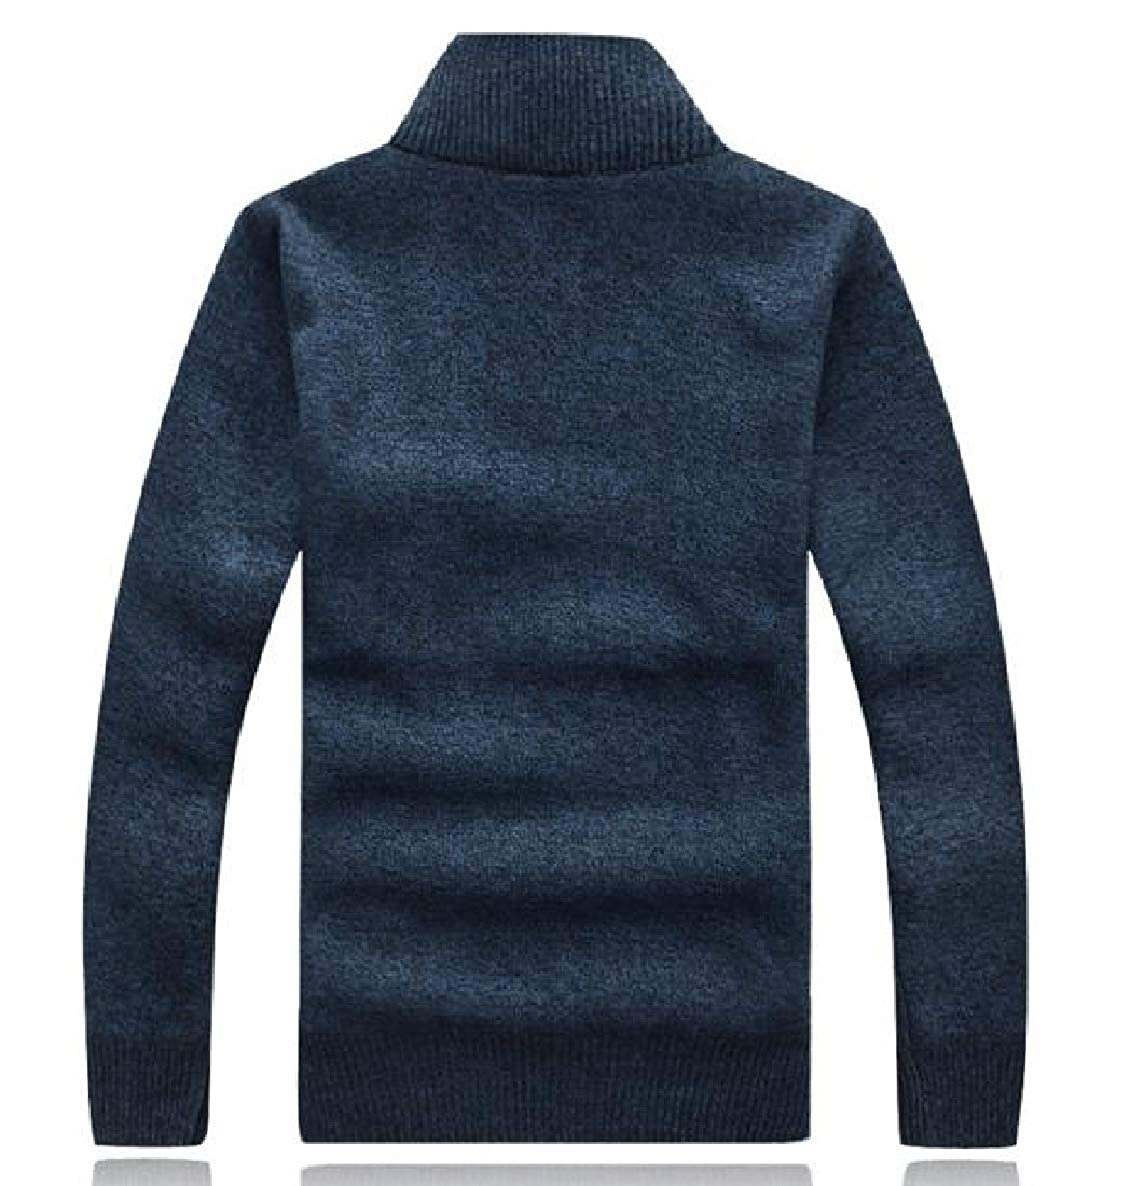 VividYou Mens Thicken Knitted Stand Collar Jersey Outwear Pullover Sweaters